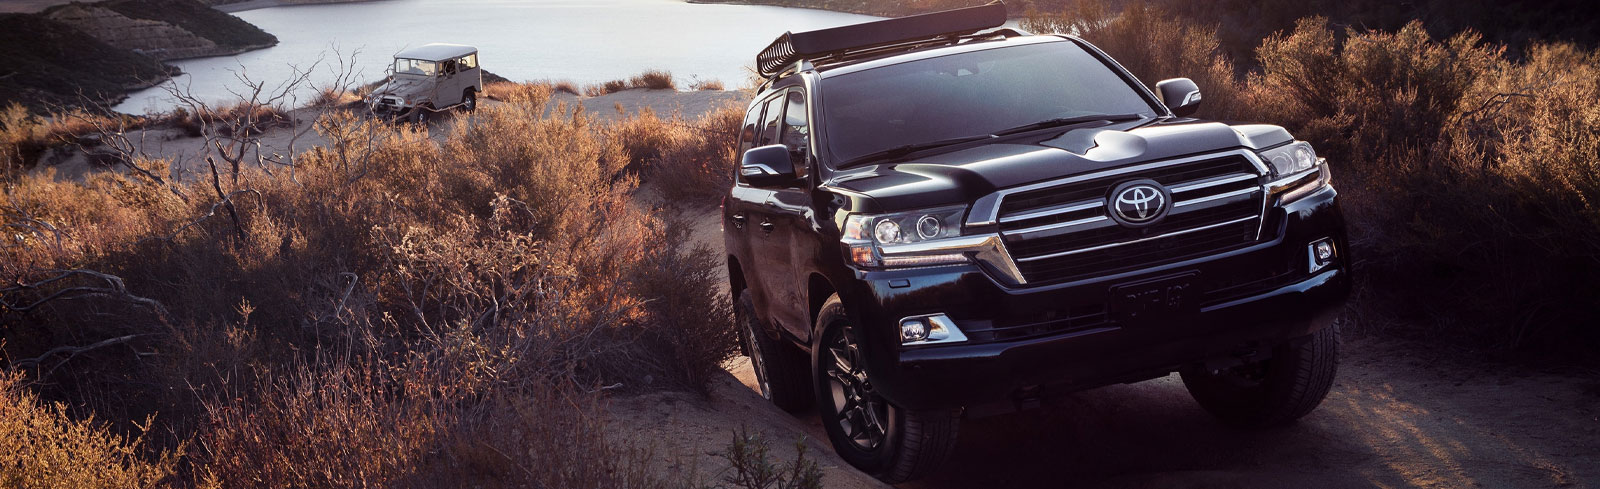 All New 2020 Toyota Land Cruiser for Sale at Future Toyota of Yuba City